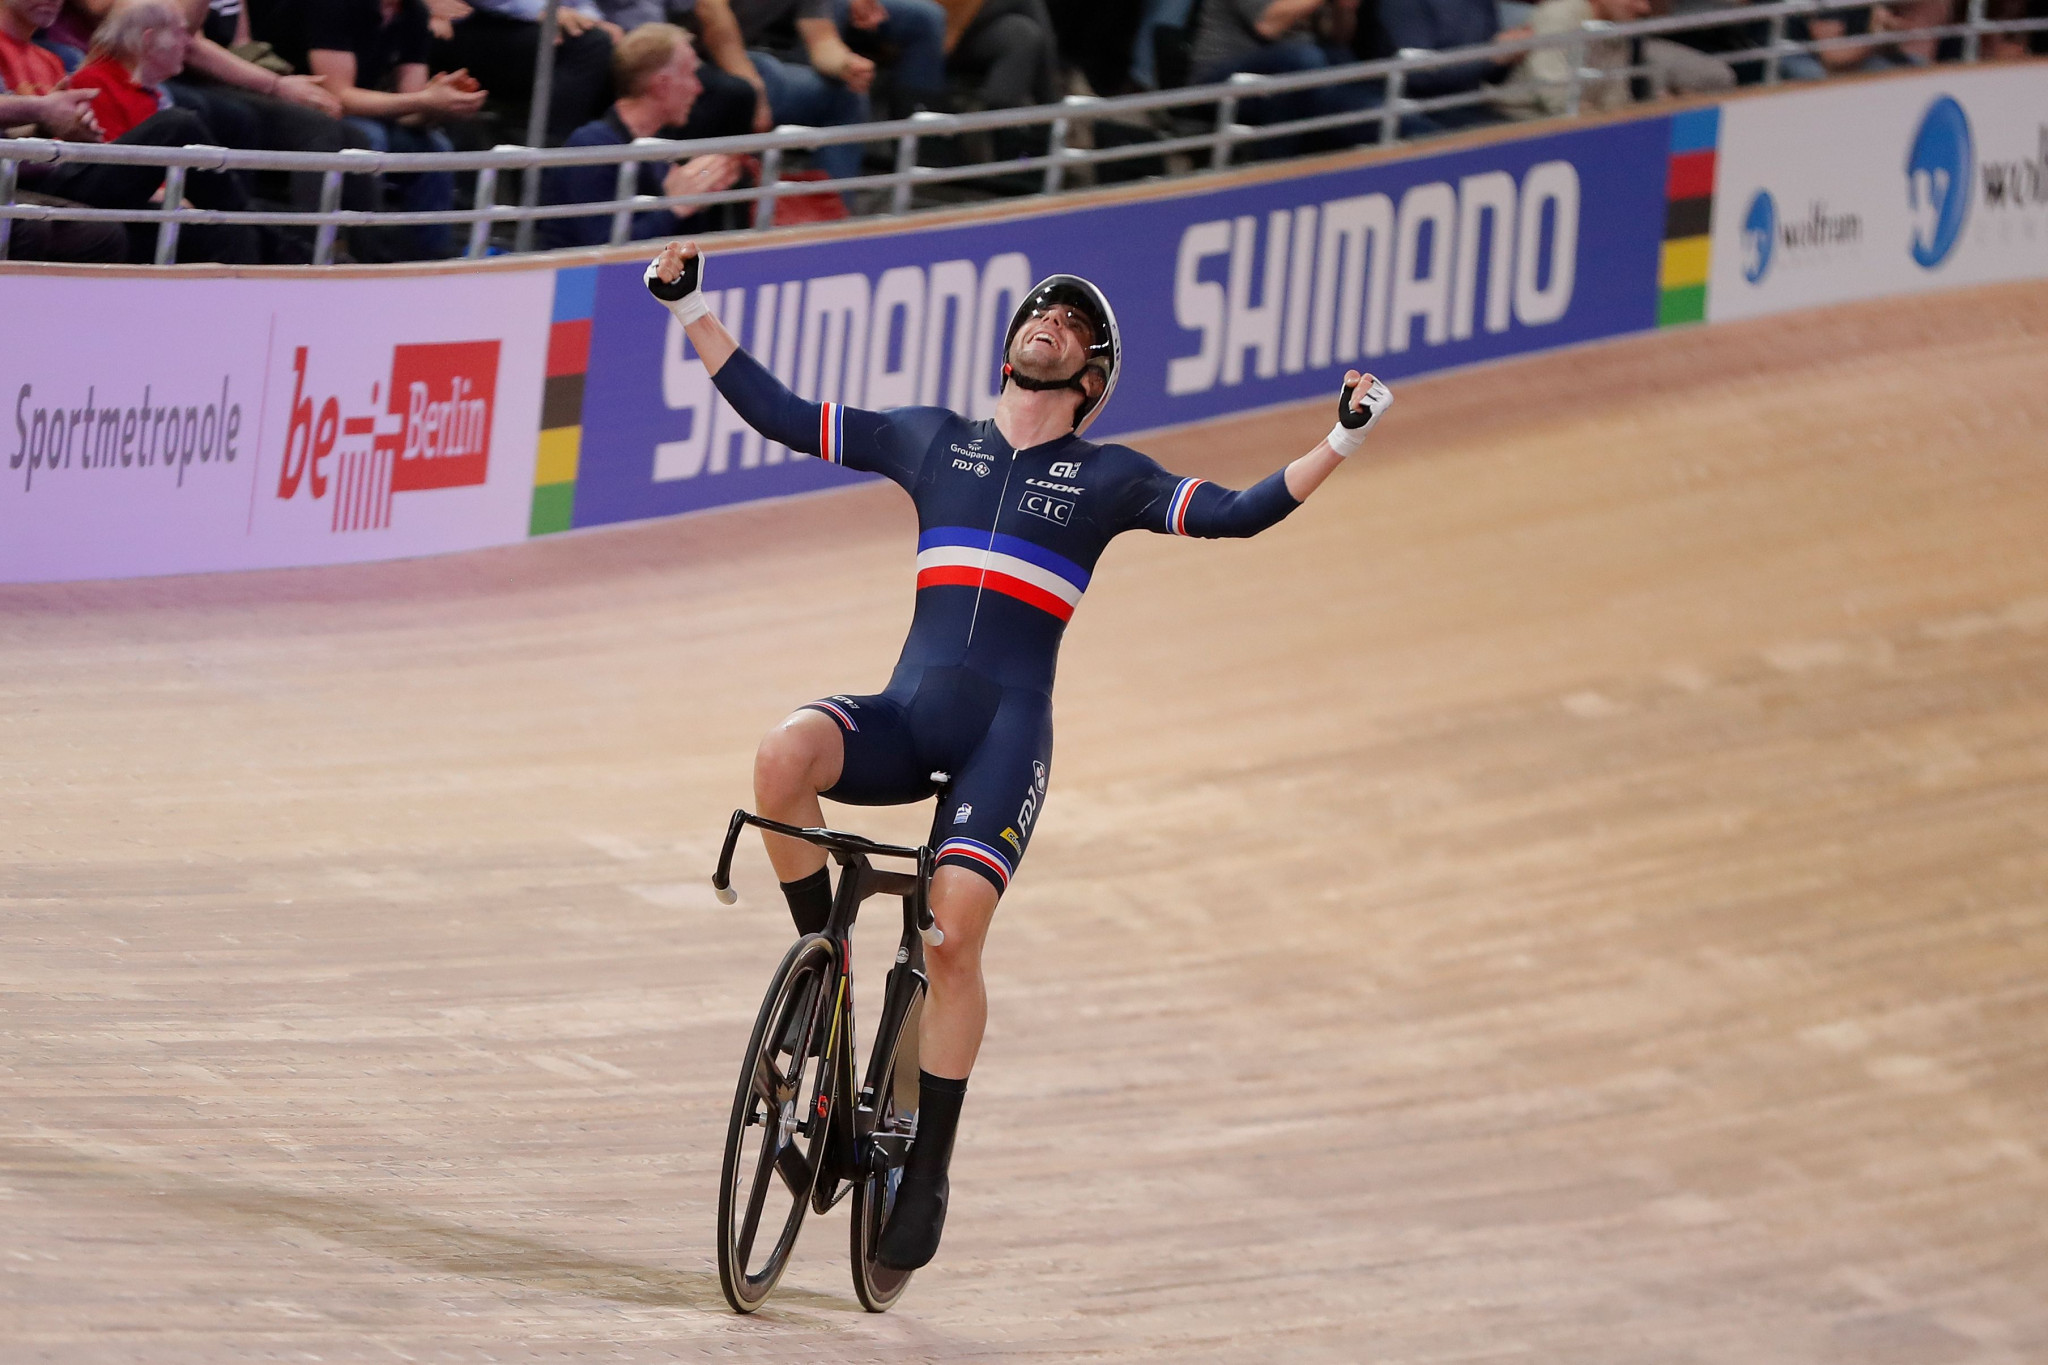 UCI claim no risk of coronavirus spread at World Track Cycling Championships